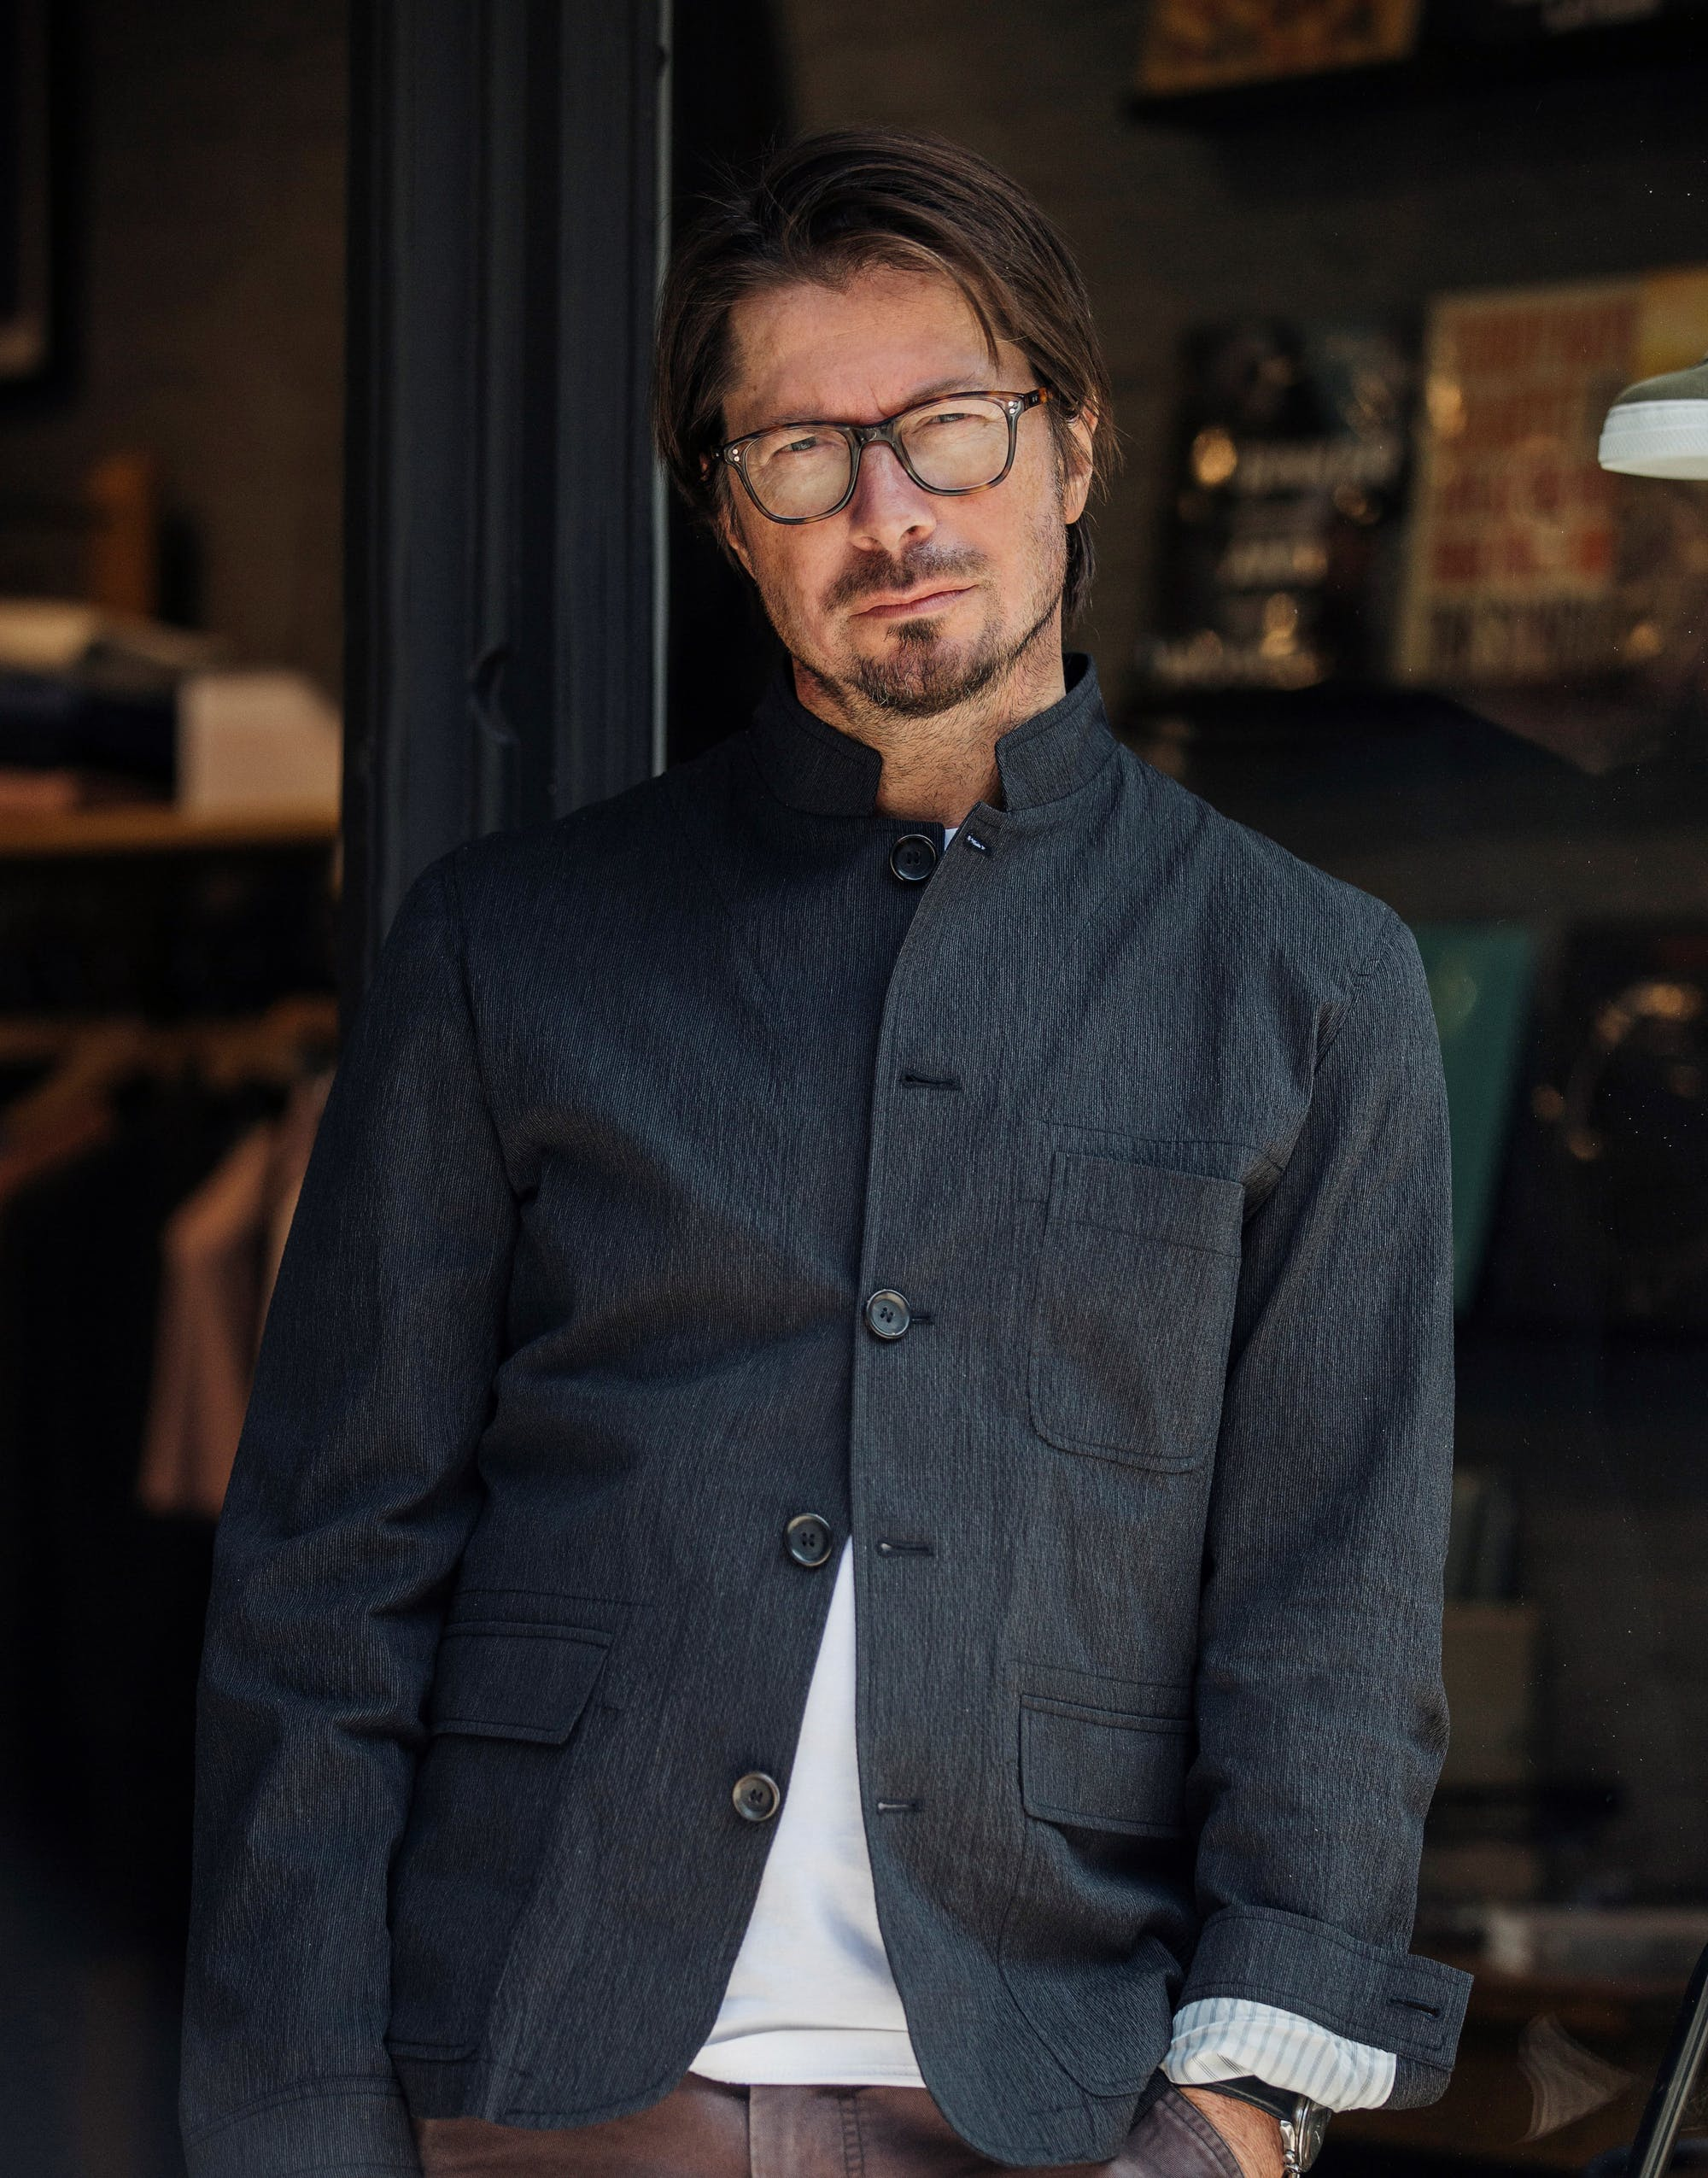 Grace Under Fire: Luxury leadership in troubled times  Something better change – an interview with Oliver Spencer, founder of Oliver Spencer and Favourbrook